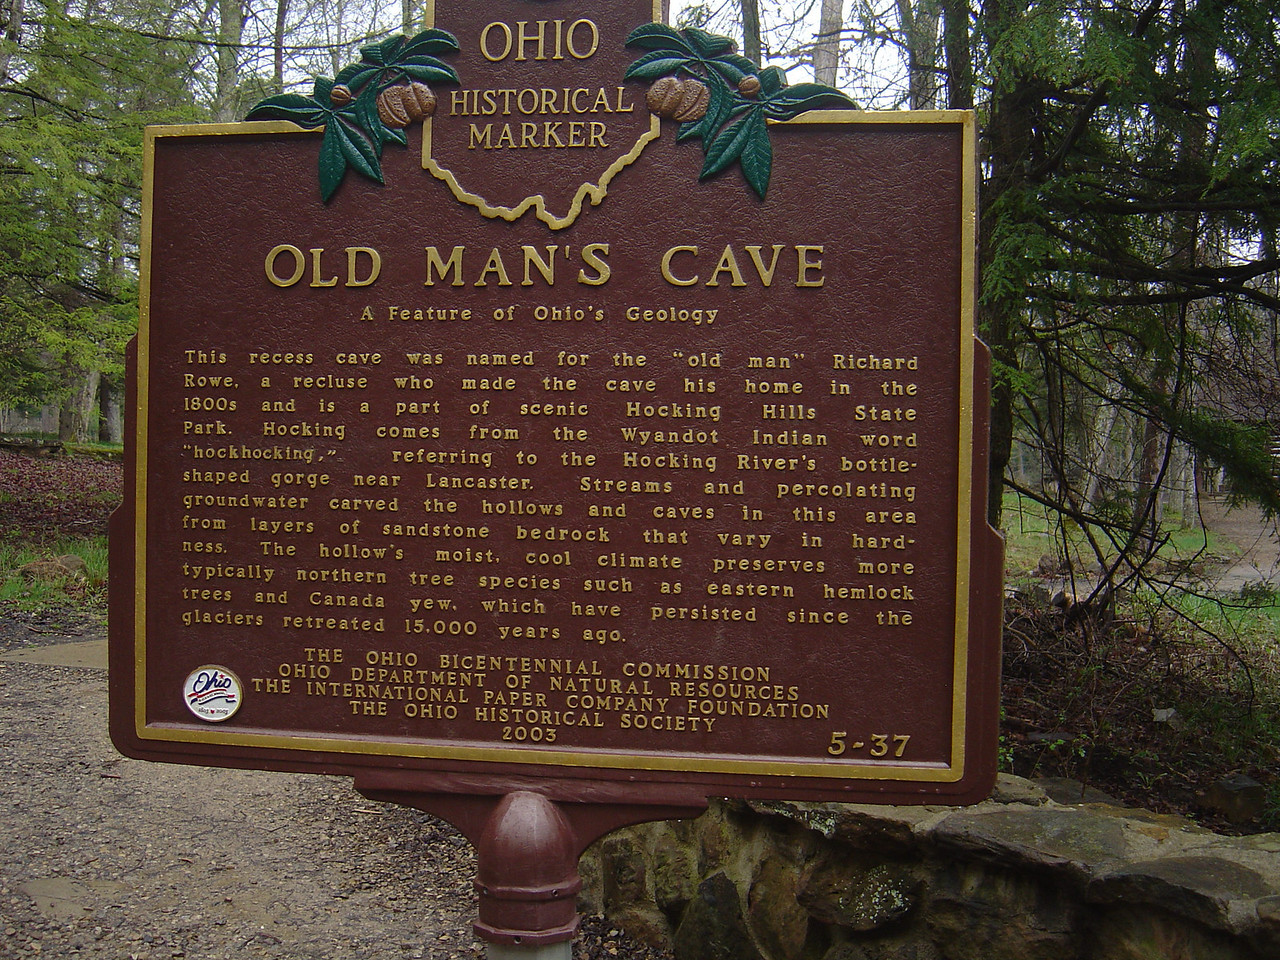 Old man's cave sign